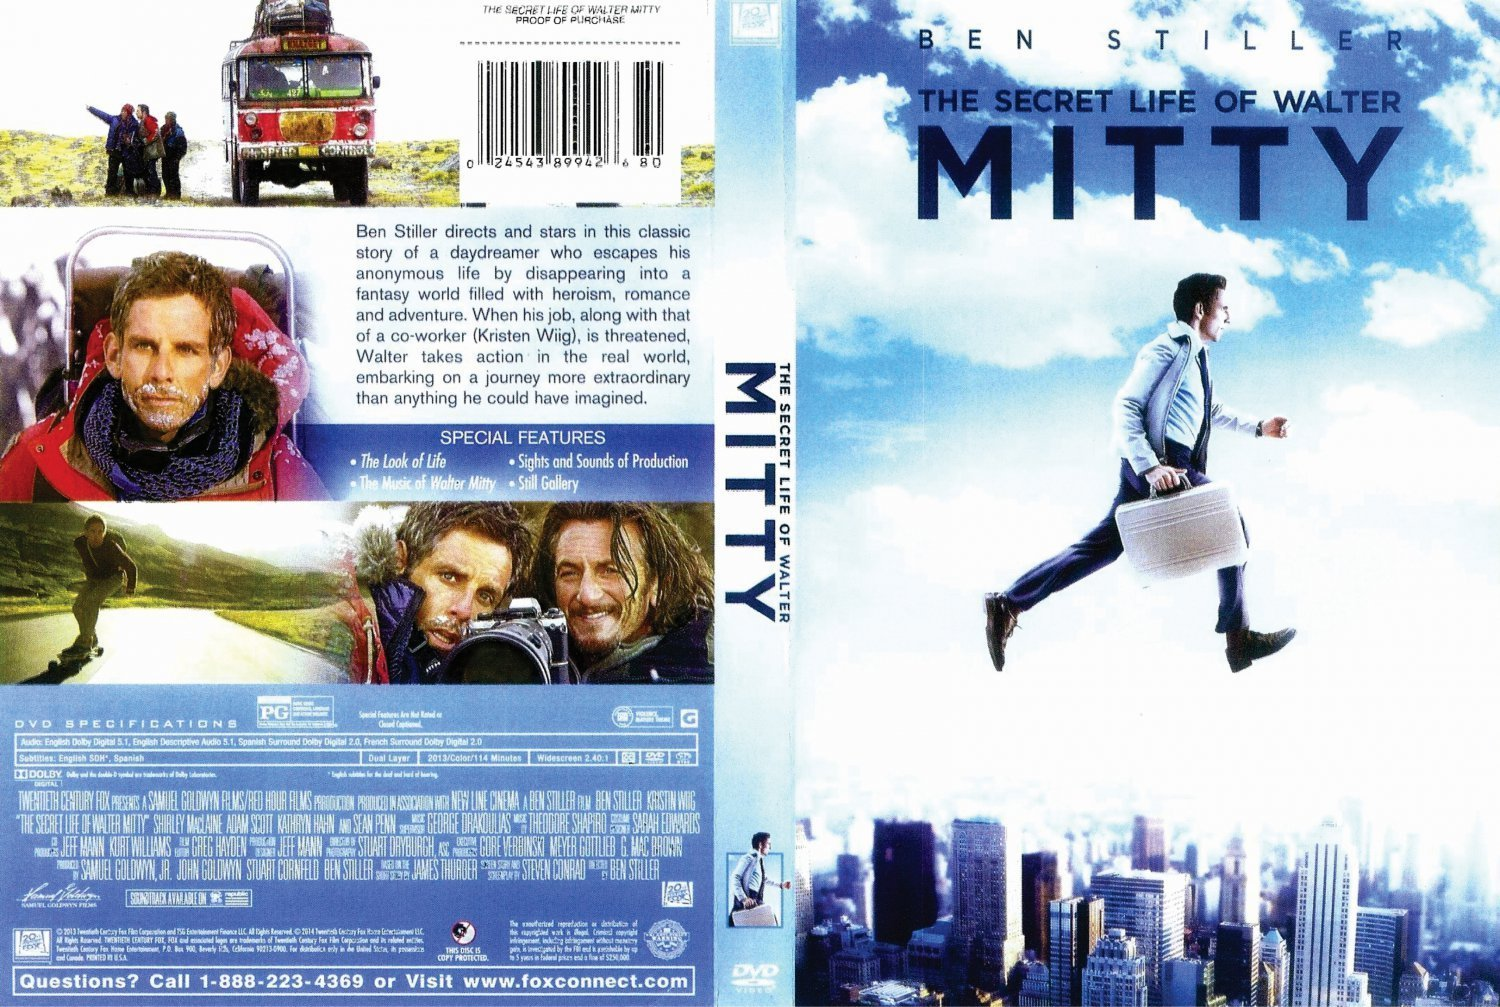 daydreaming as a means of escaping the real world in the secret life of walter mitty by james thurbe The secret life of walter mitty by james thurber the secret life of walter mitty and who is to say that the secret world of walter mitty is not a real.